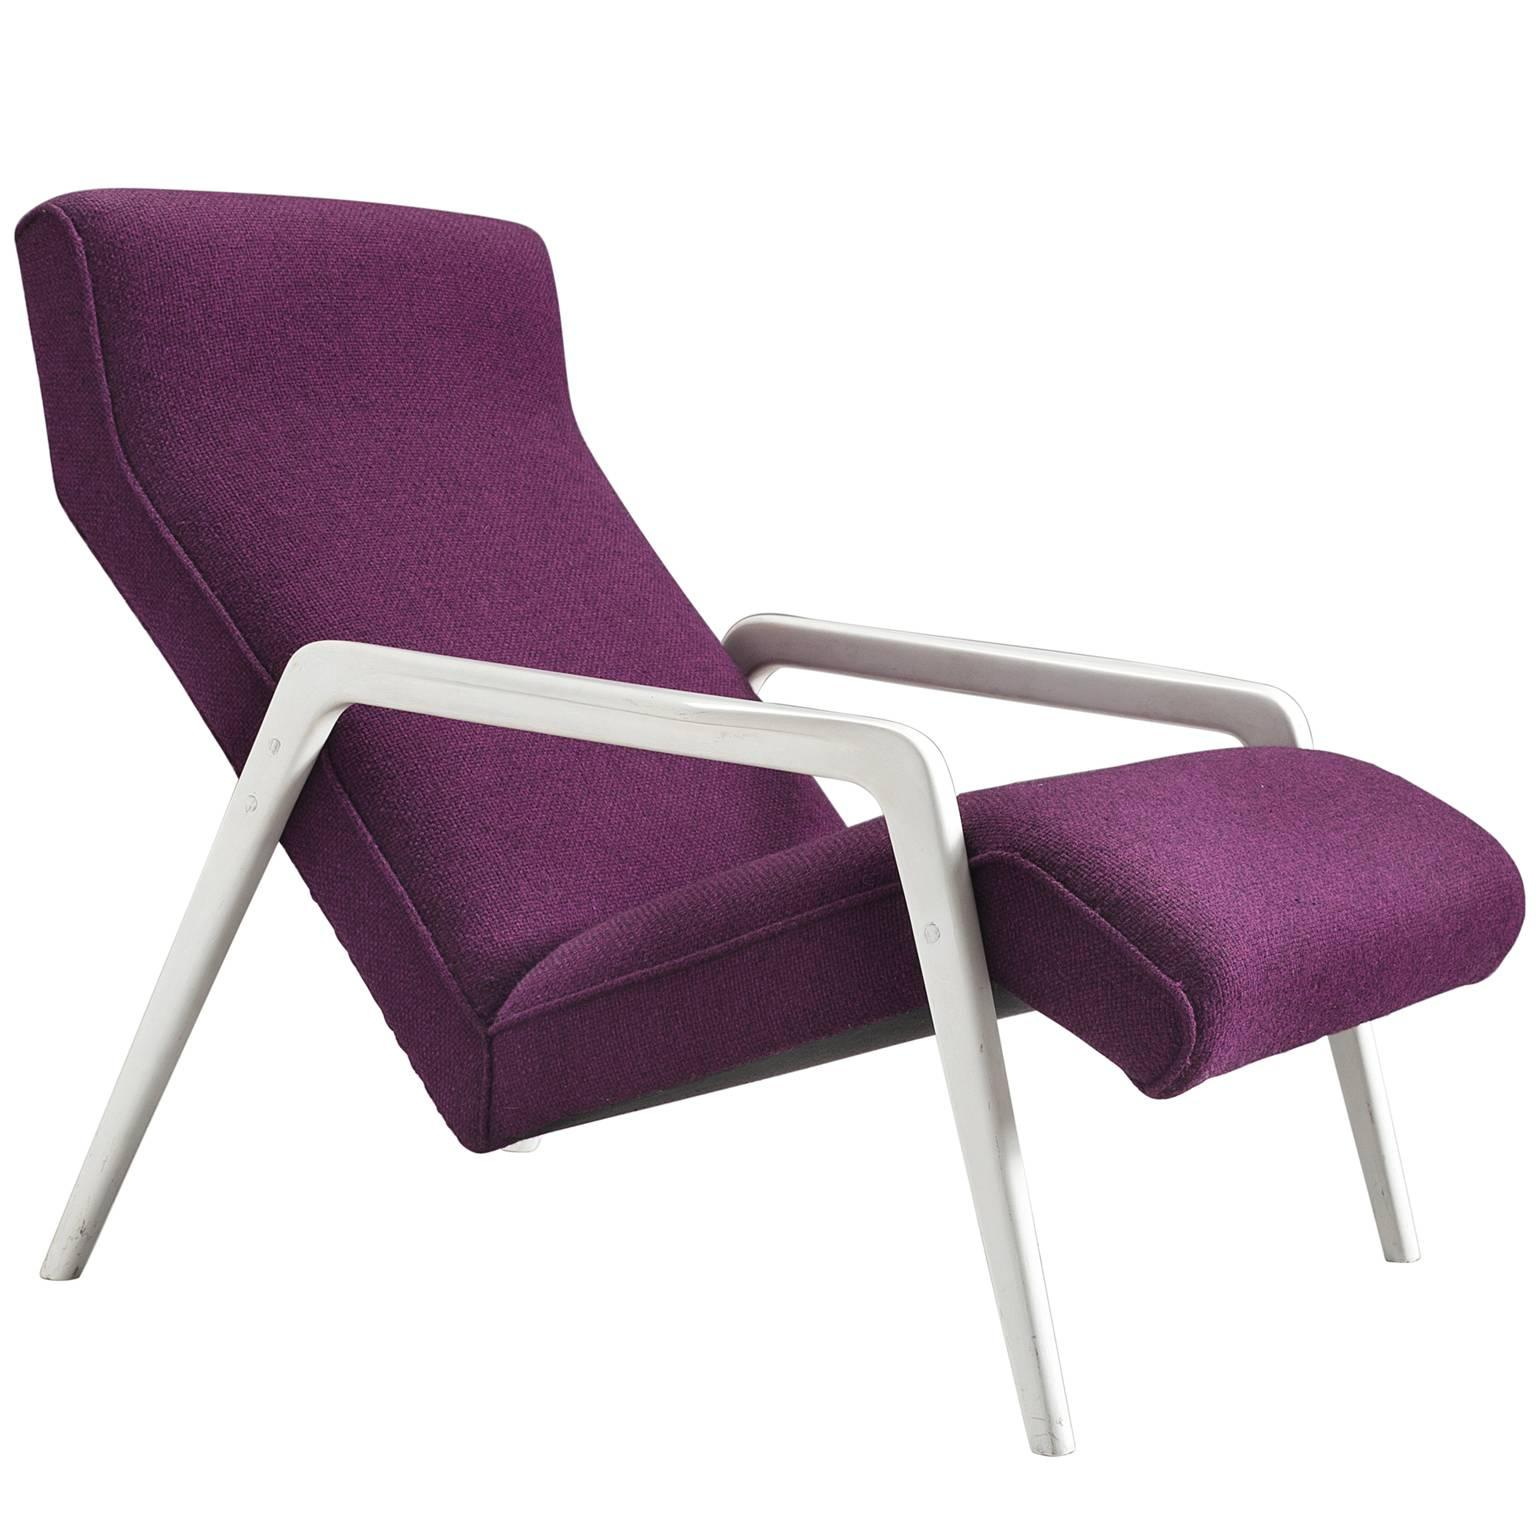 Merveilleux Italian Lounge Chair In Purple Upholstery For Sale